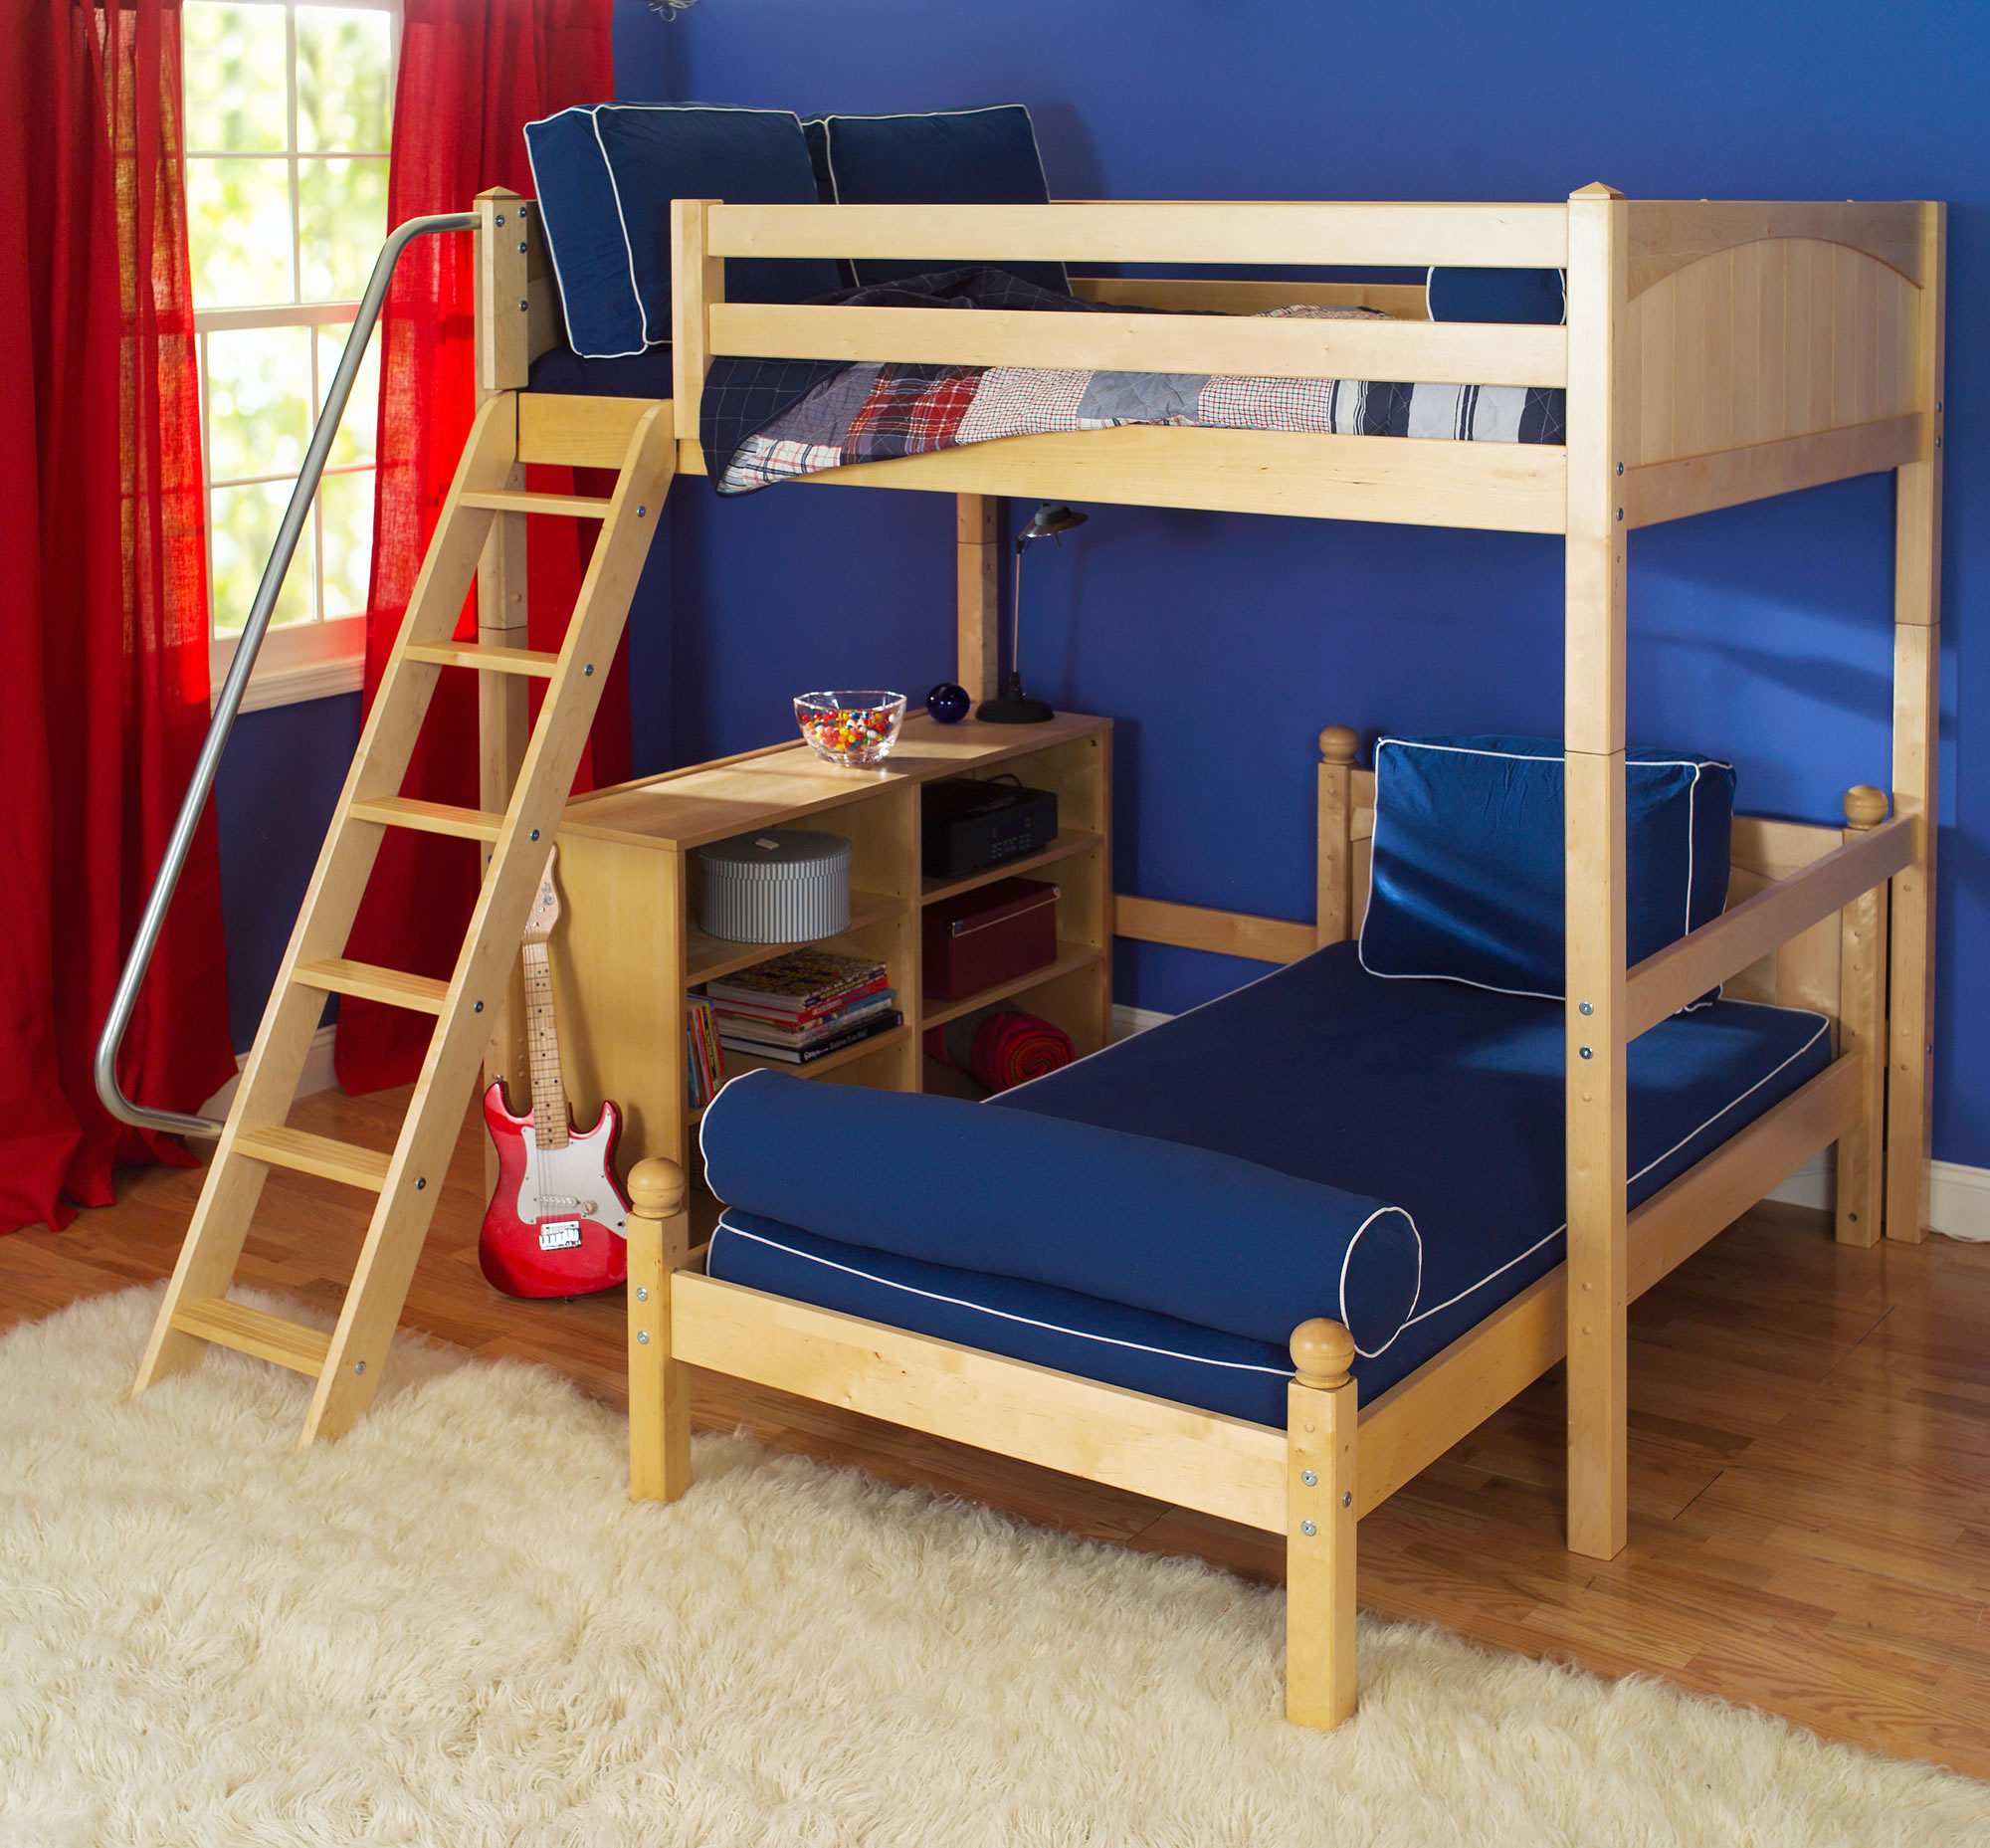 twin size bunk bed plans